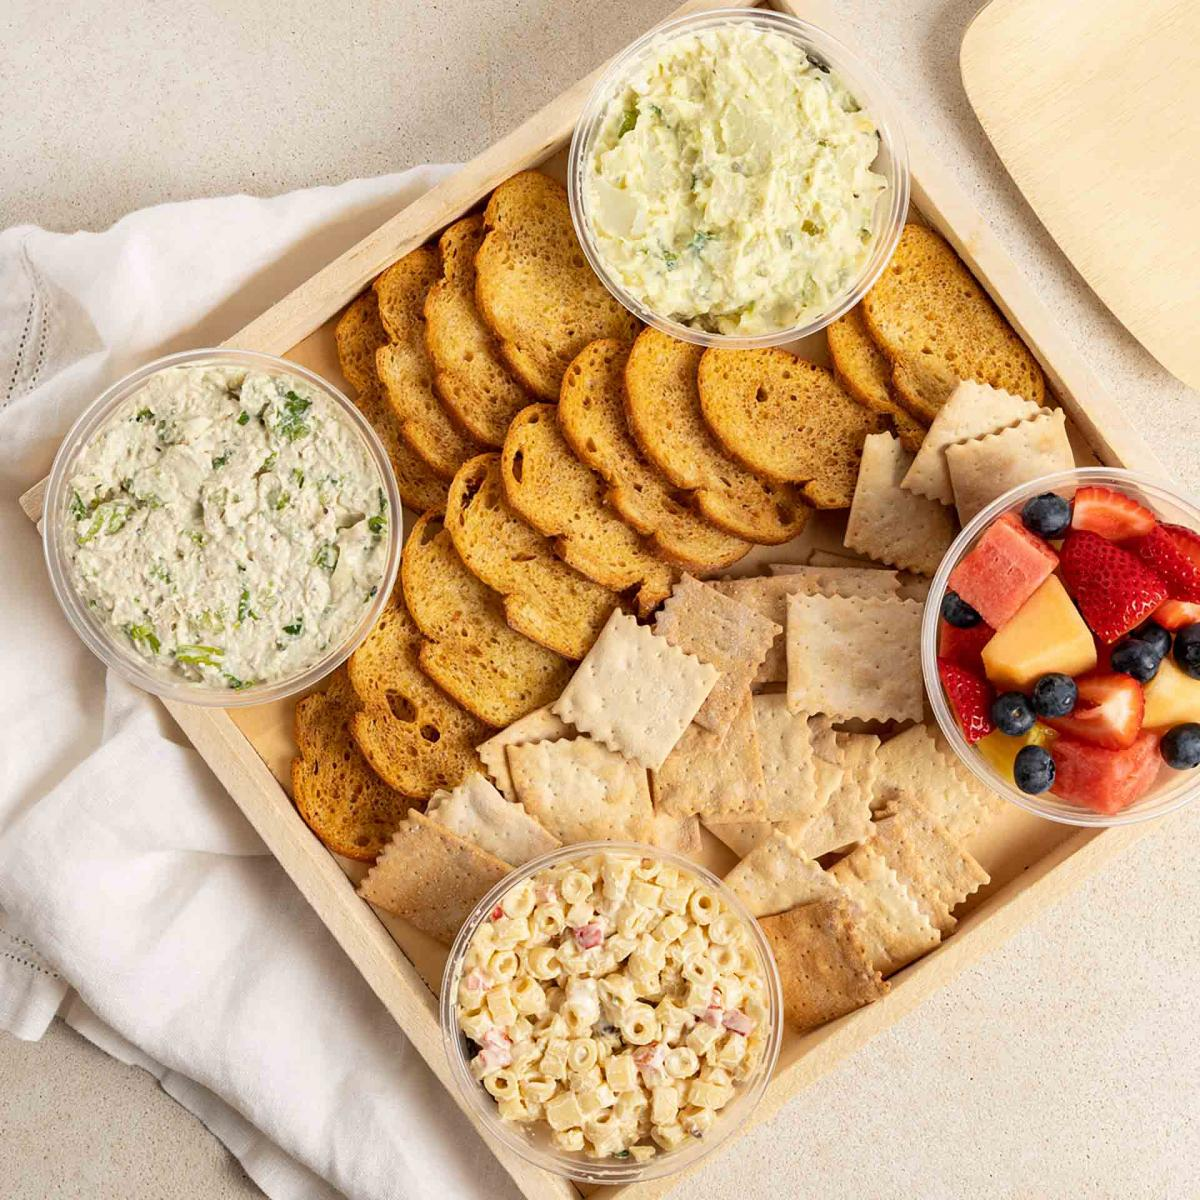 A tray of macaroni salad, fruit salad, chicken salad, crackers and carrot sticks